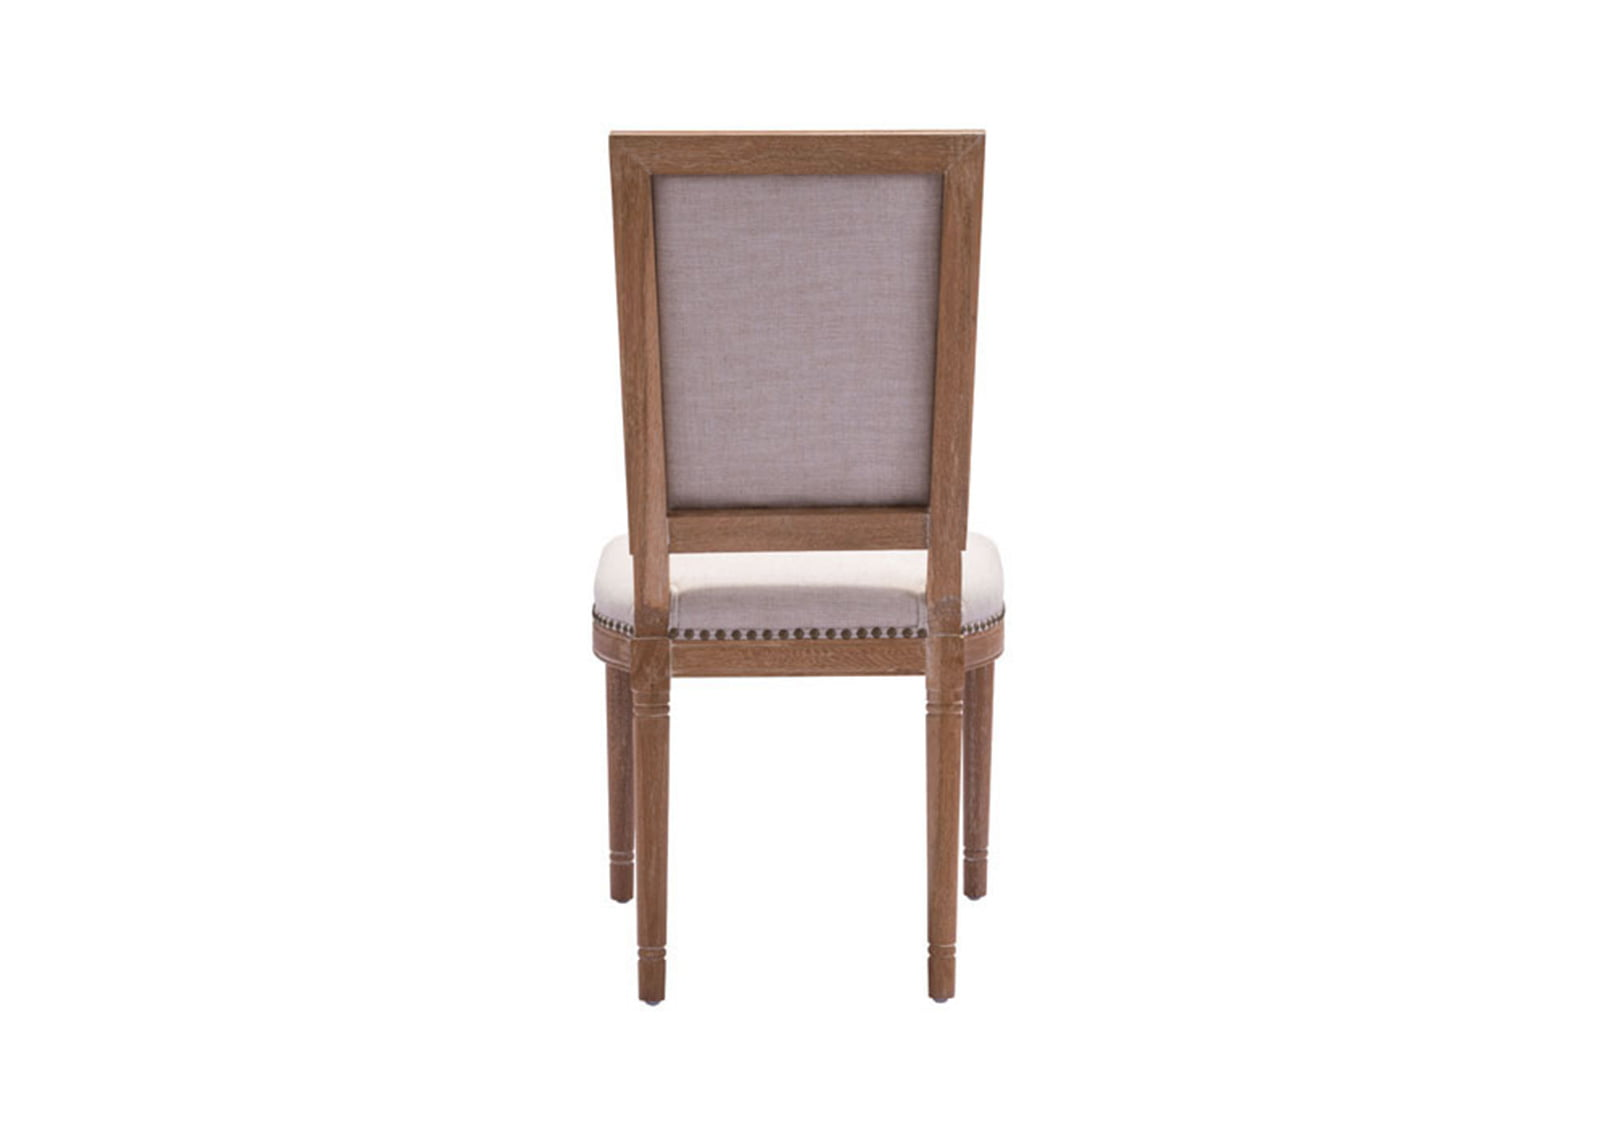 beige dining chairs office chair video game mcallister furnishplus